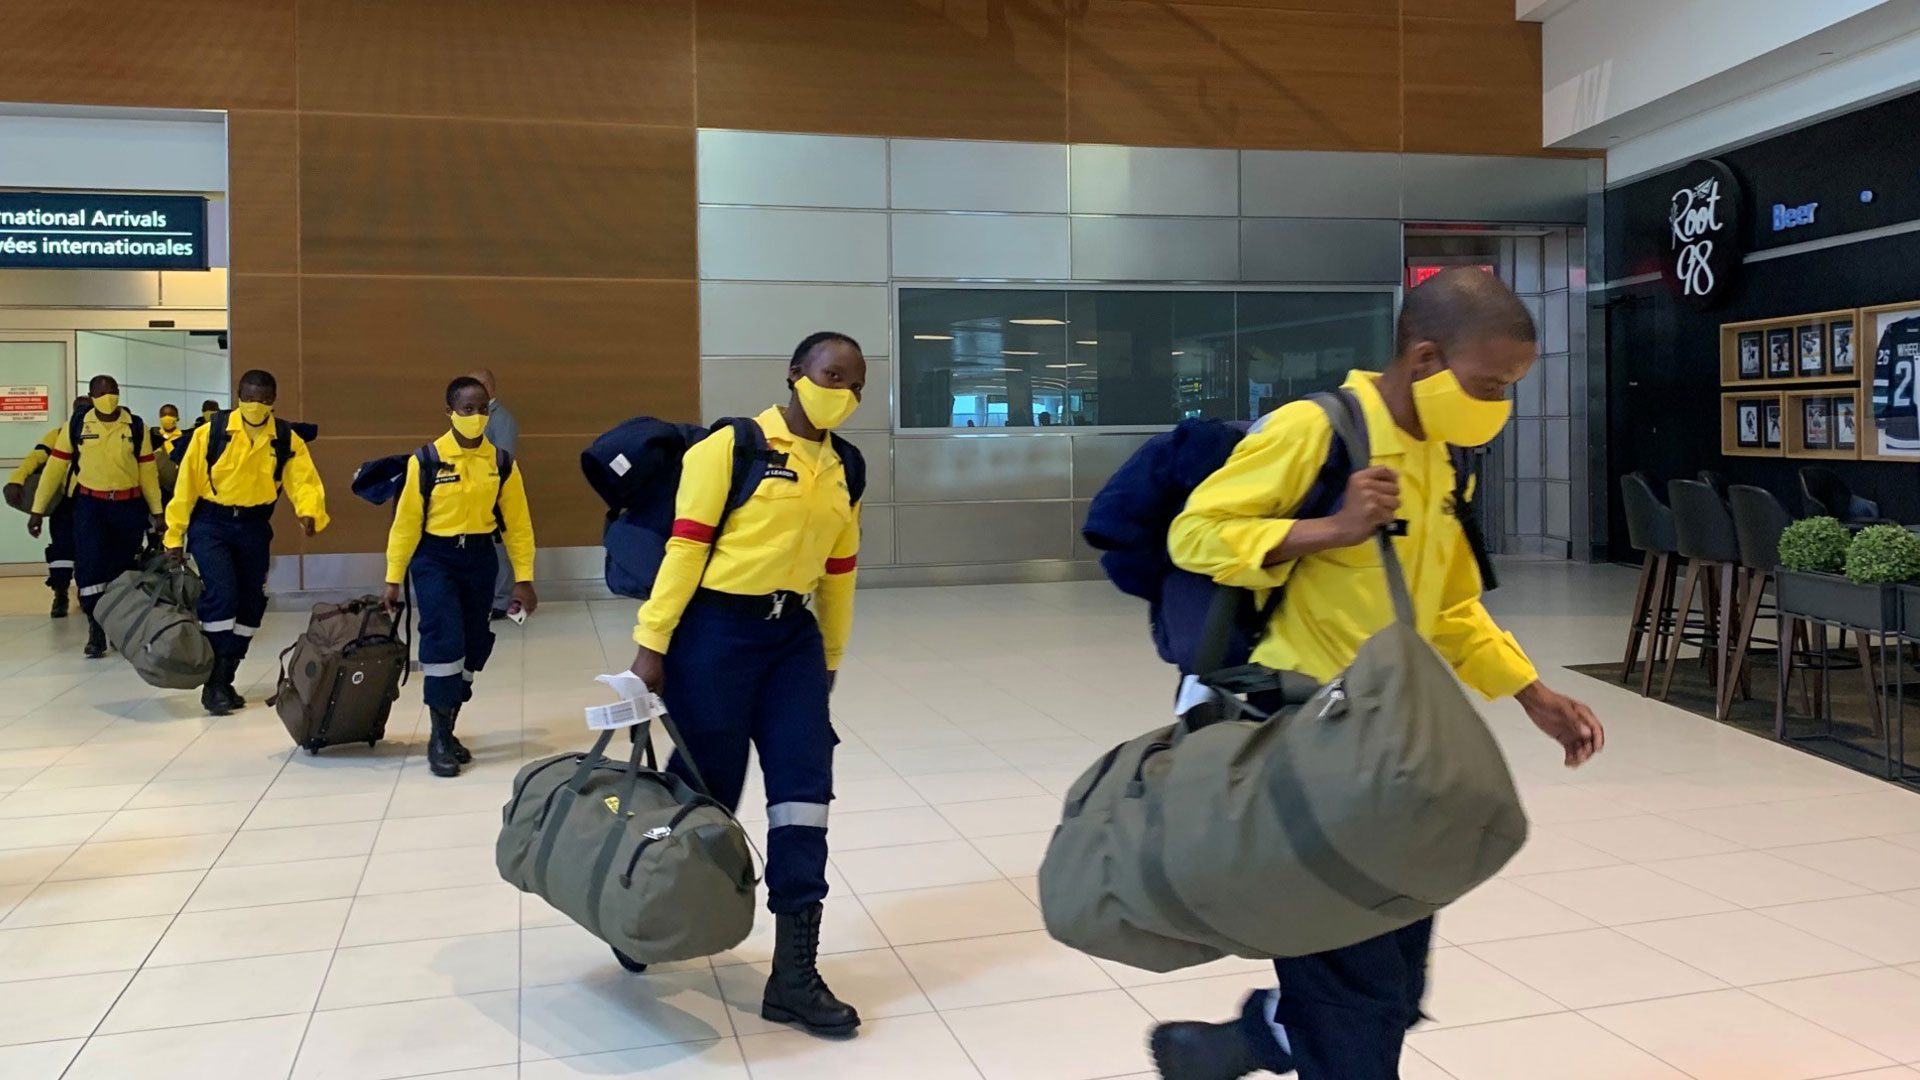 Firefighters from South Africa